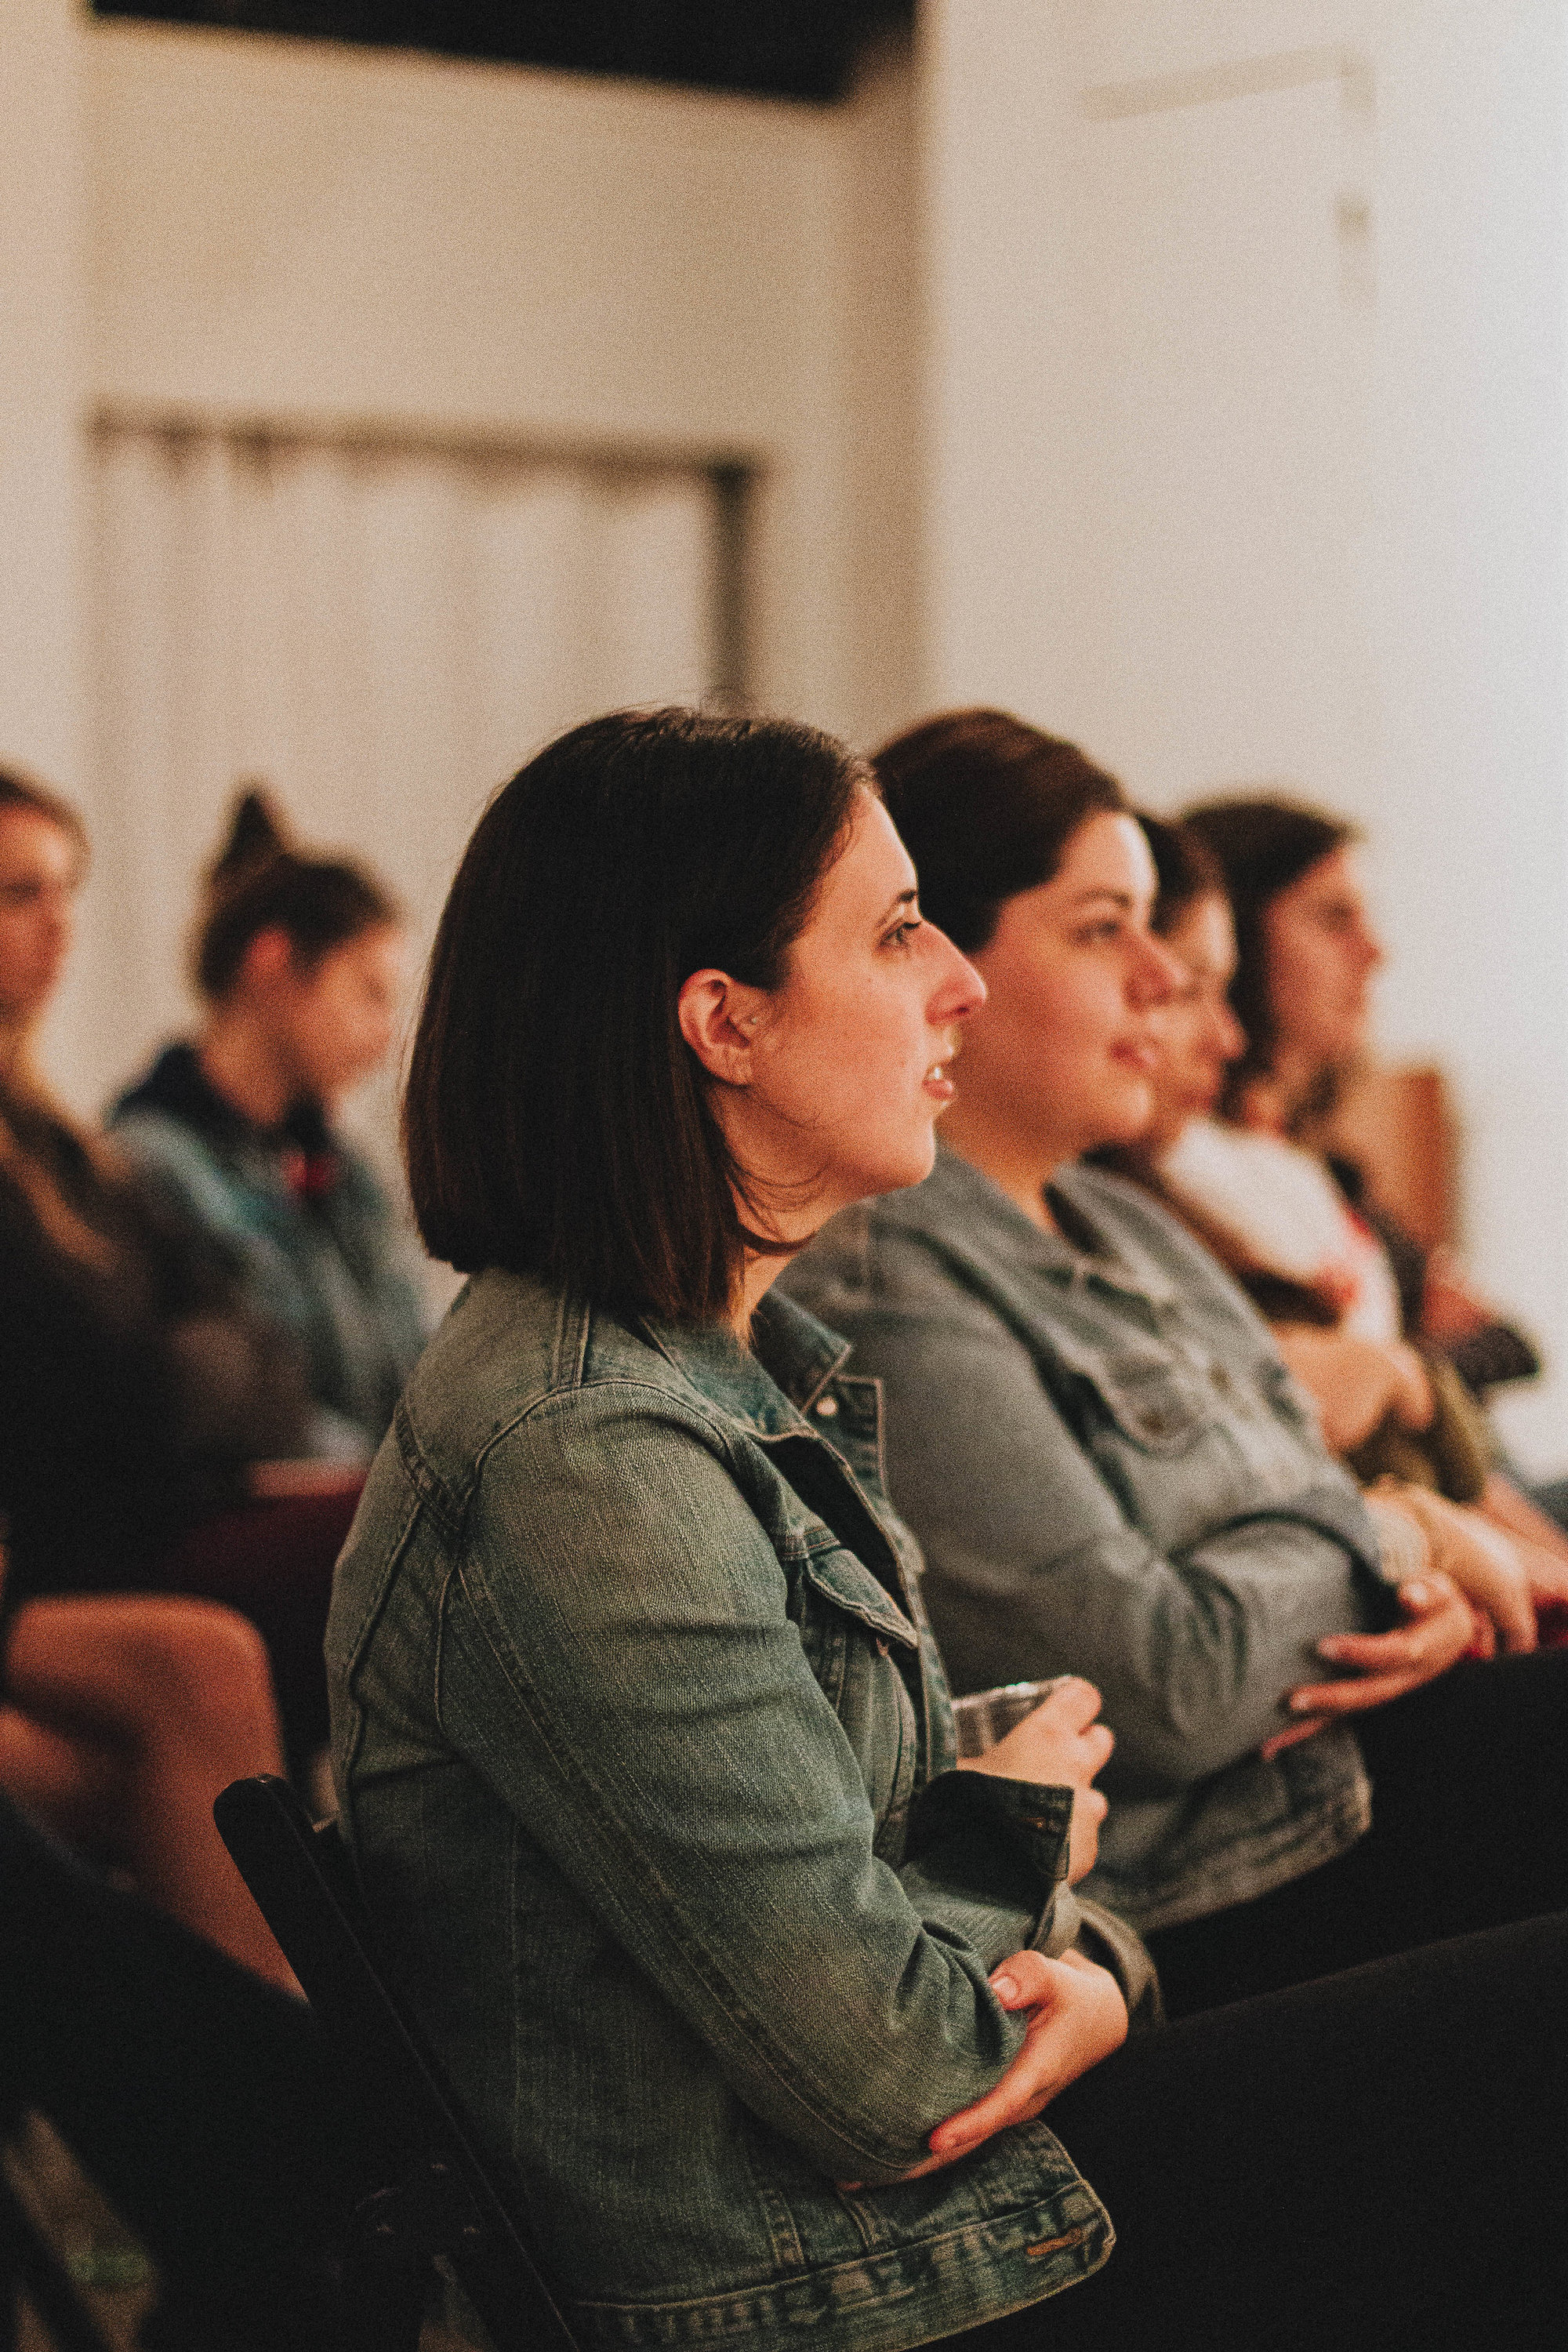 Audience from a panel event featuring Kendall Antonelli of  Antonelli's Cheese  | image by Lee Behrend